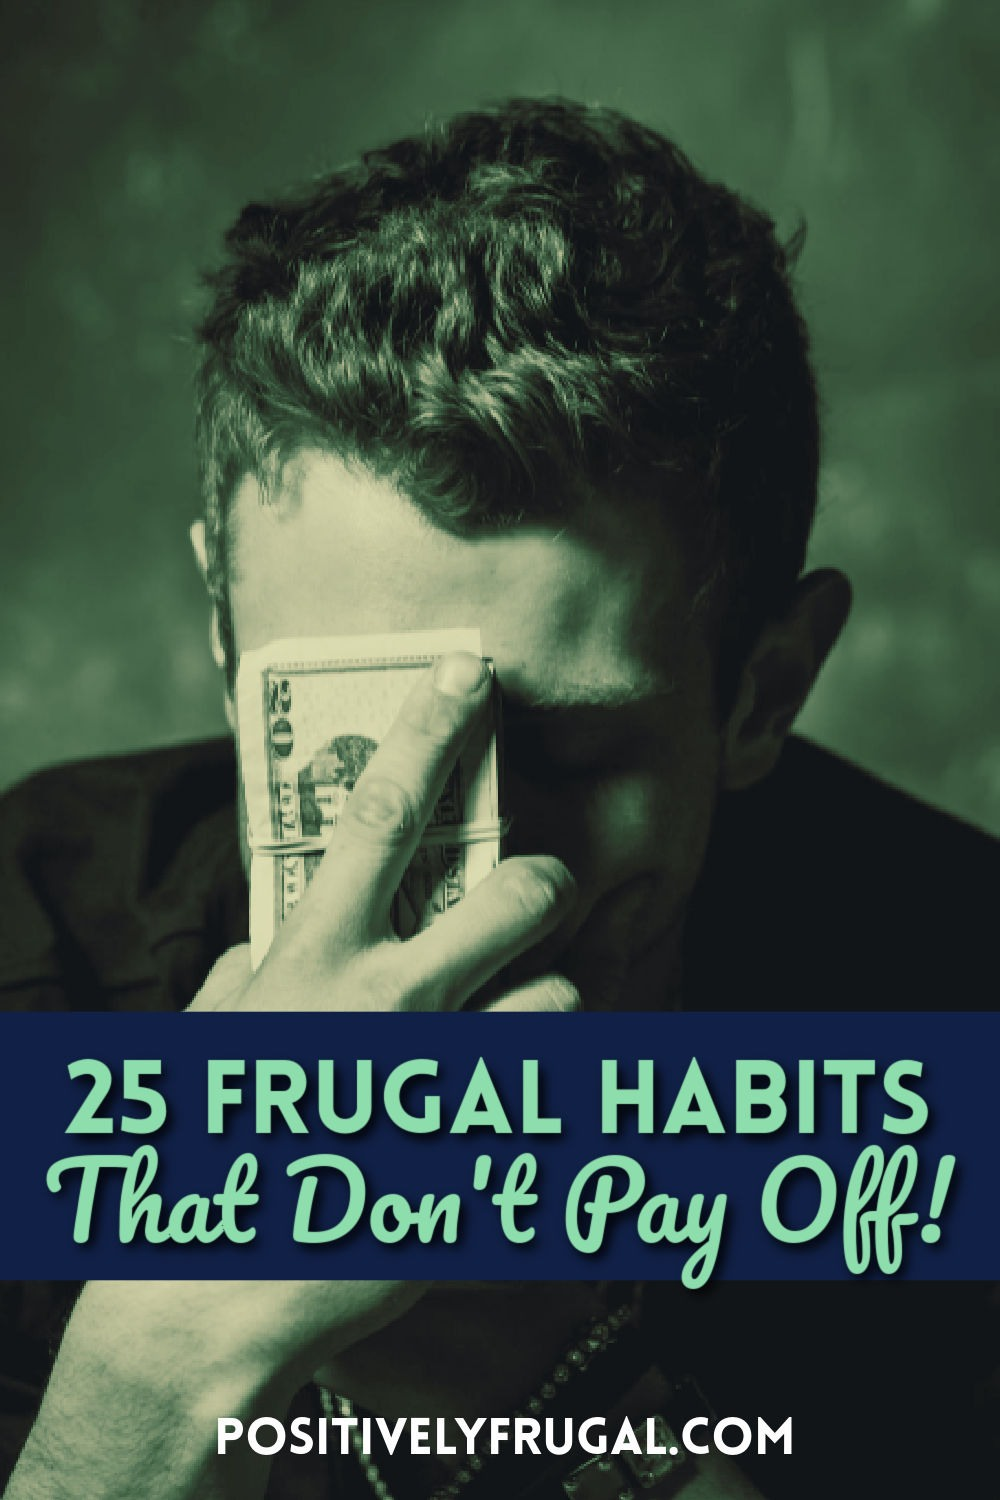 25 Frugal Habits that Don't Pay Off by PositivelyFrugal.com